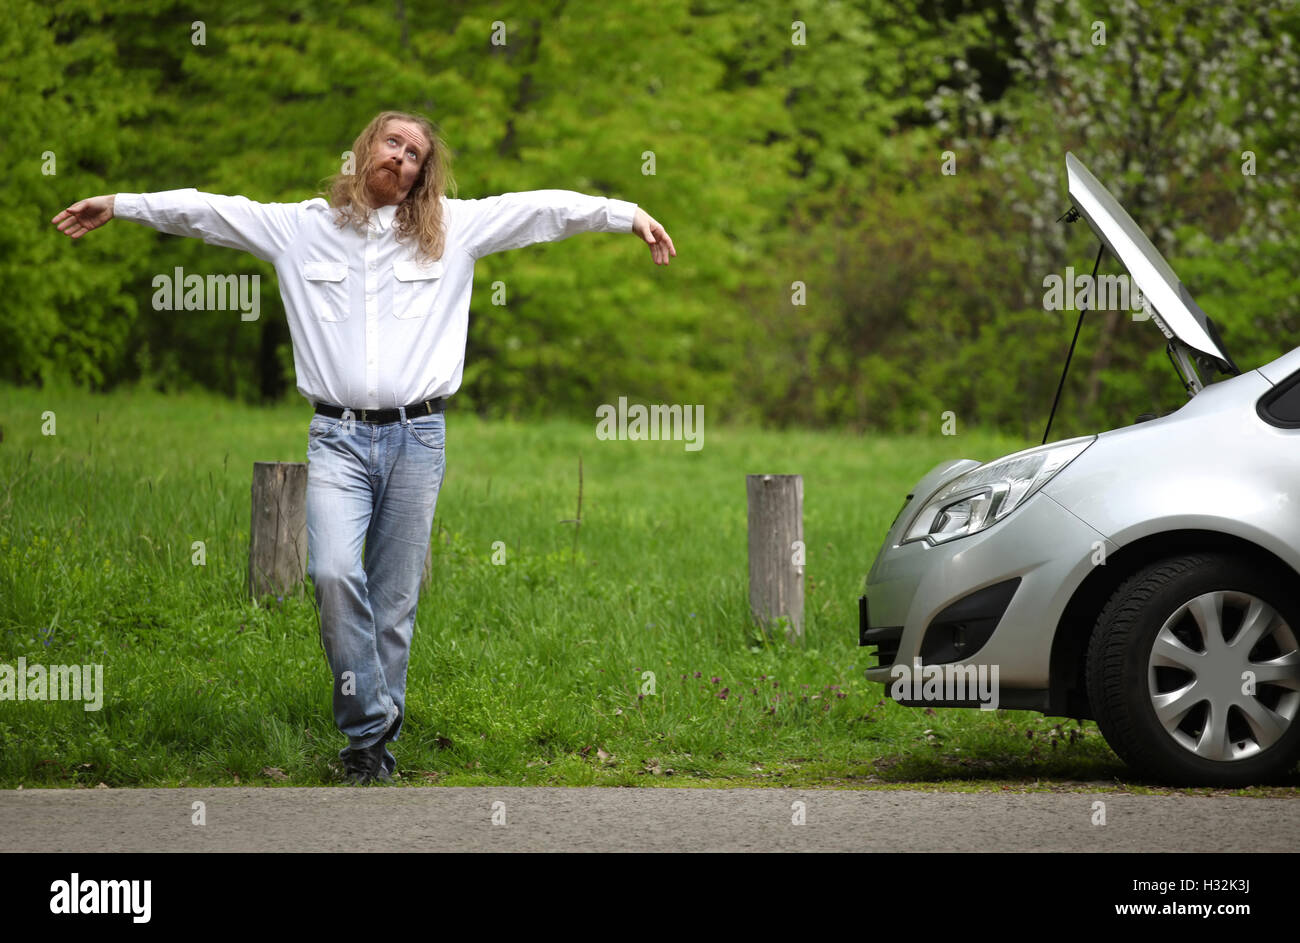 Funny driver praying a broken car by the road - Stock Image